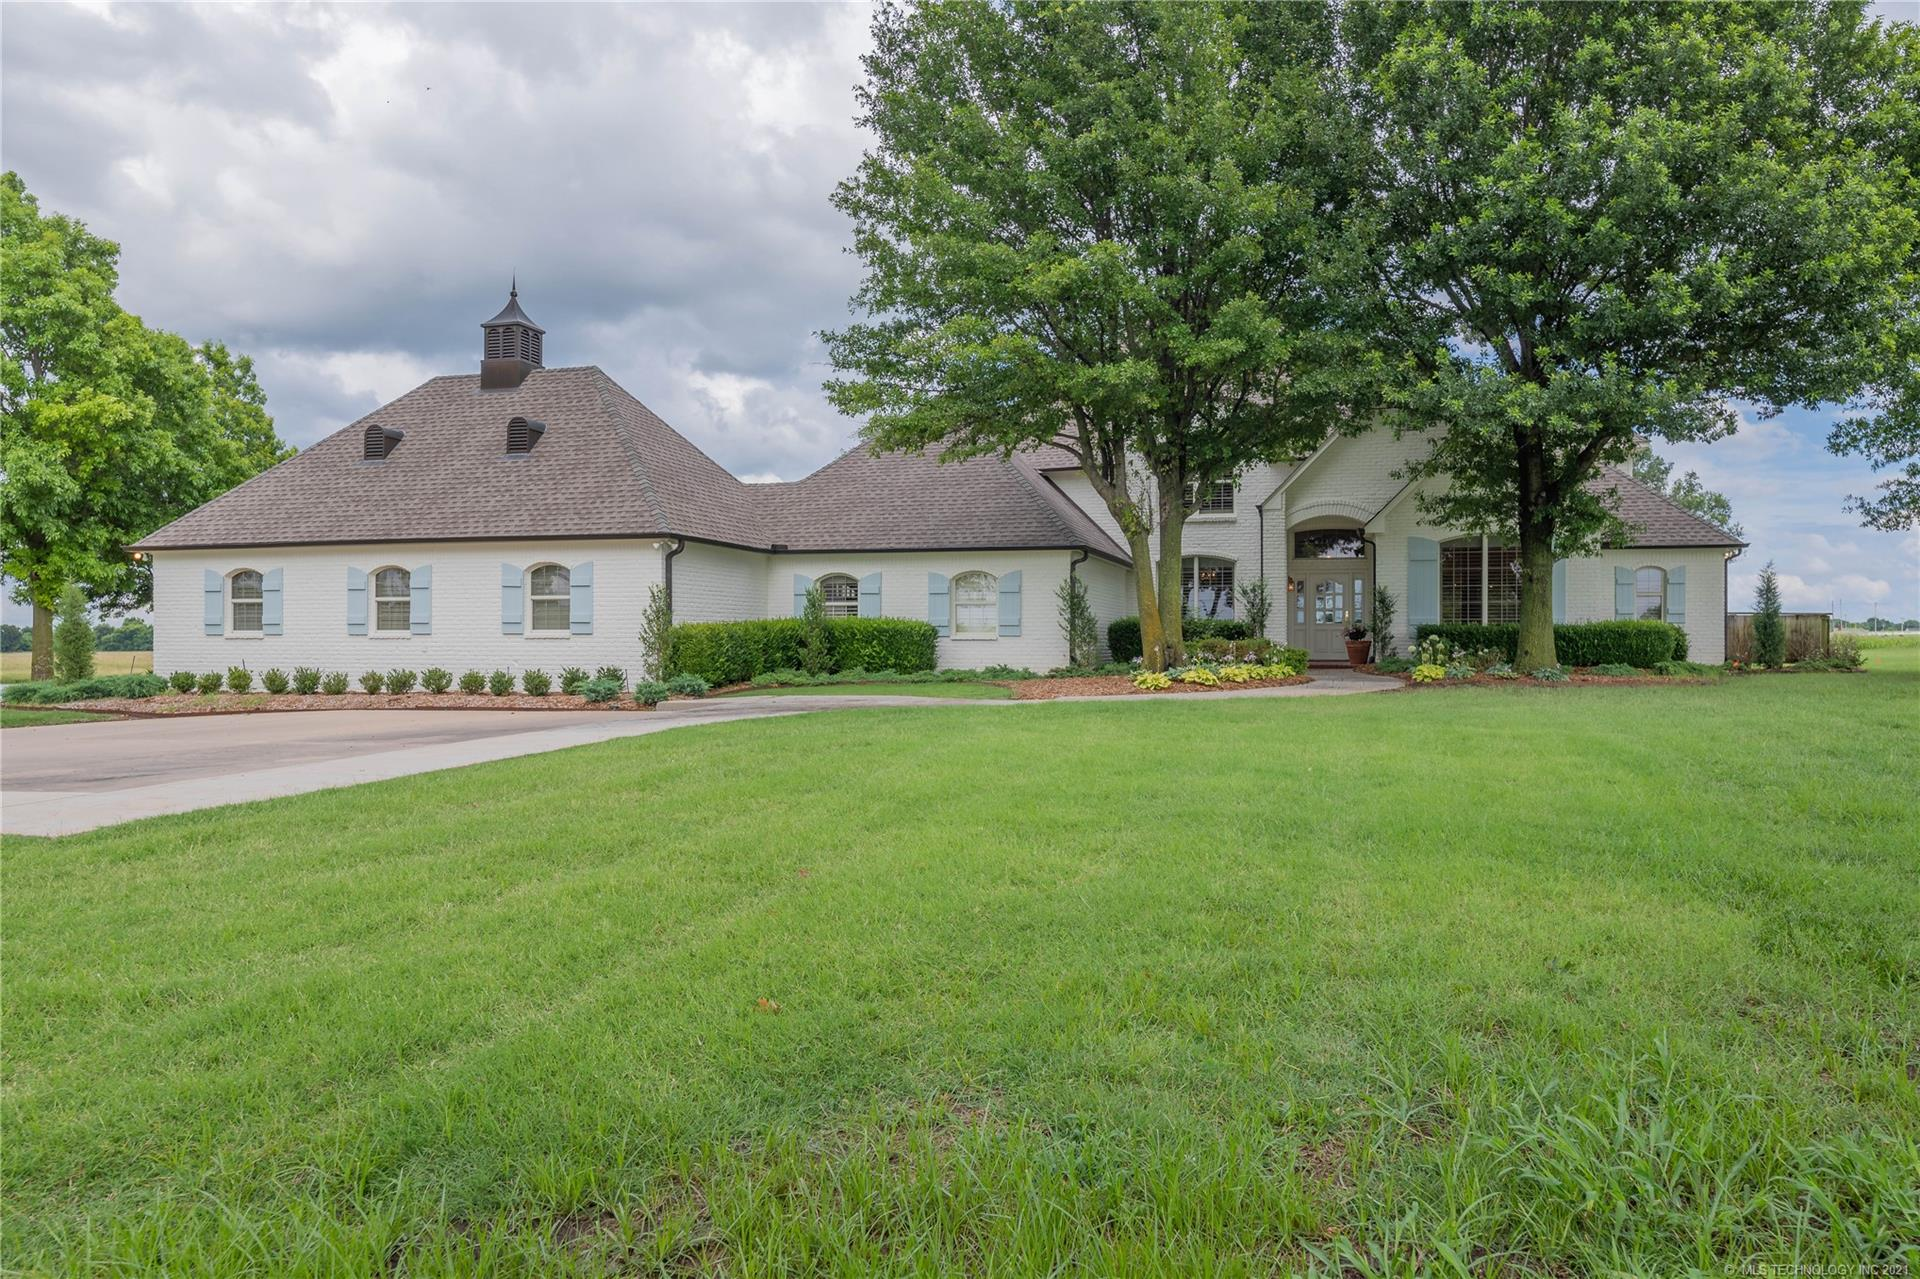 15105 N 97th East Avenue , Collinsville, OK 74021